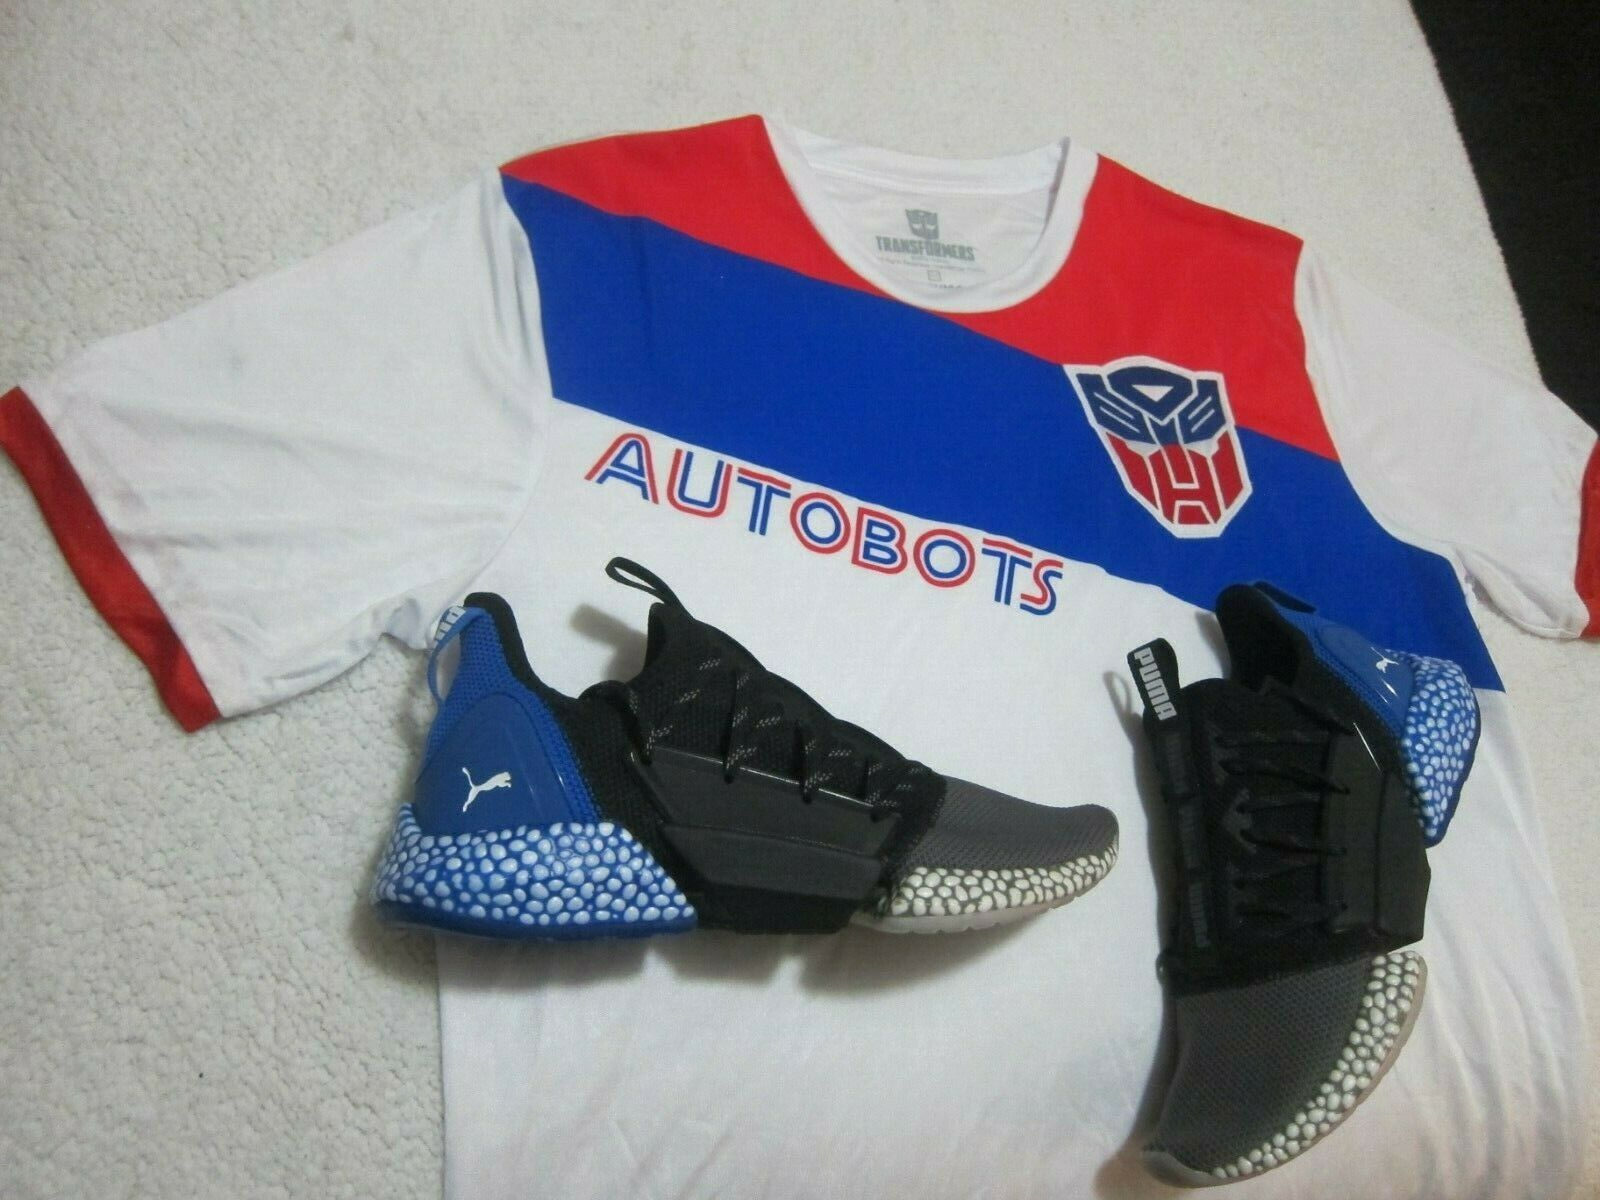 Puma Hybrids Size 10 & Transformers Active Shirt Red White bluee